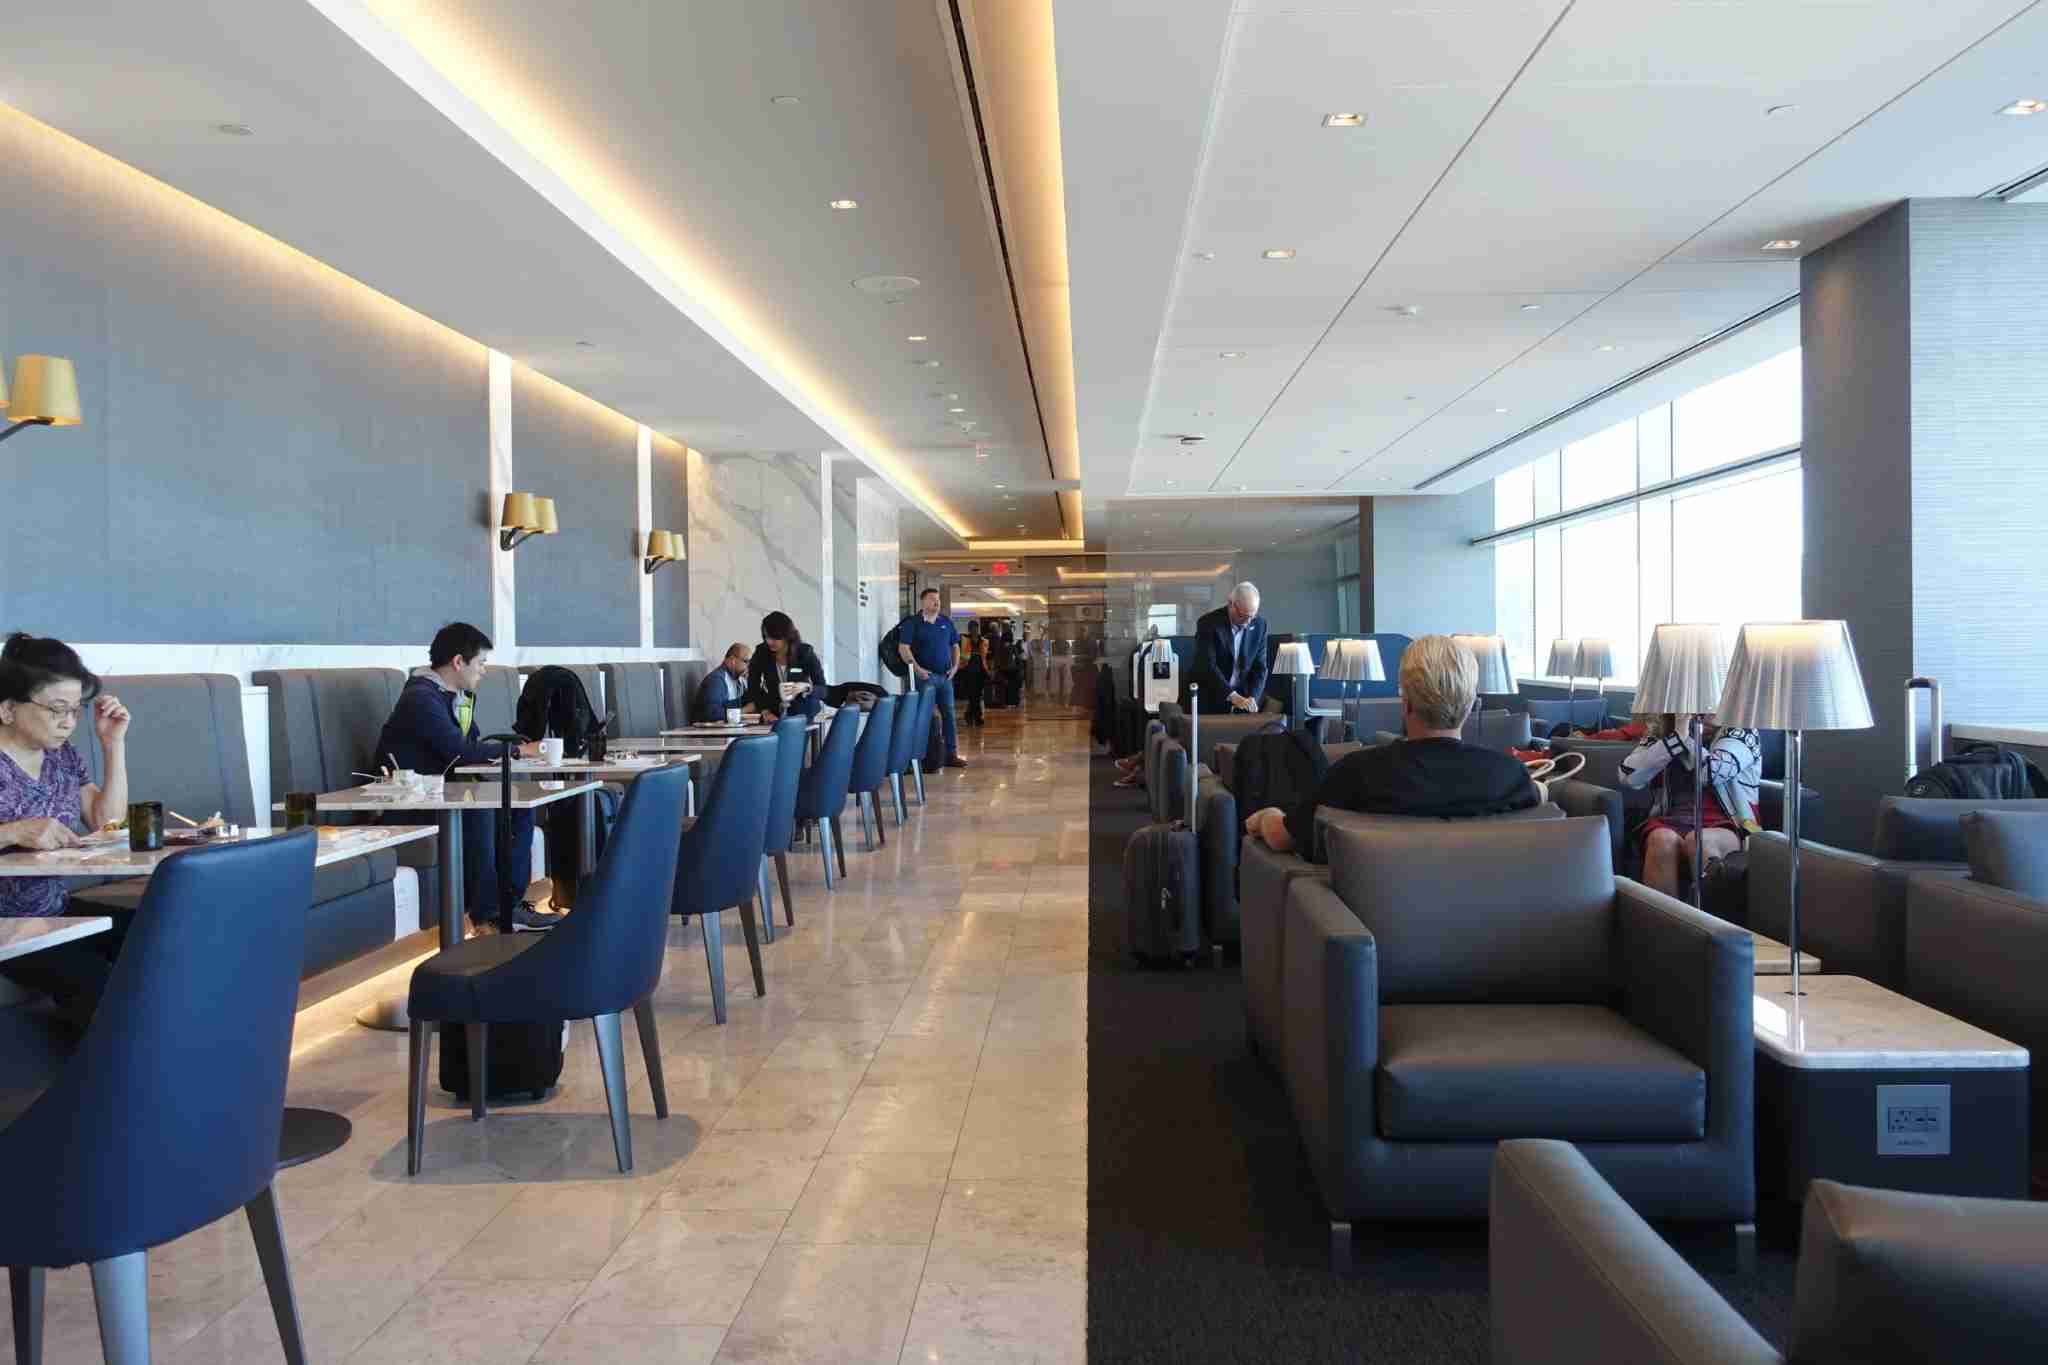 Have you been to the United Polaris Lounge in San Francisco? (Photo by Zach Honig / The Points Guy)